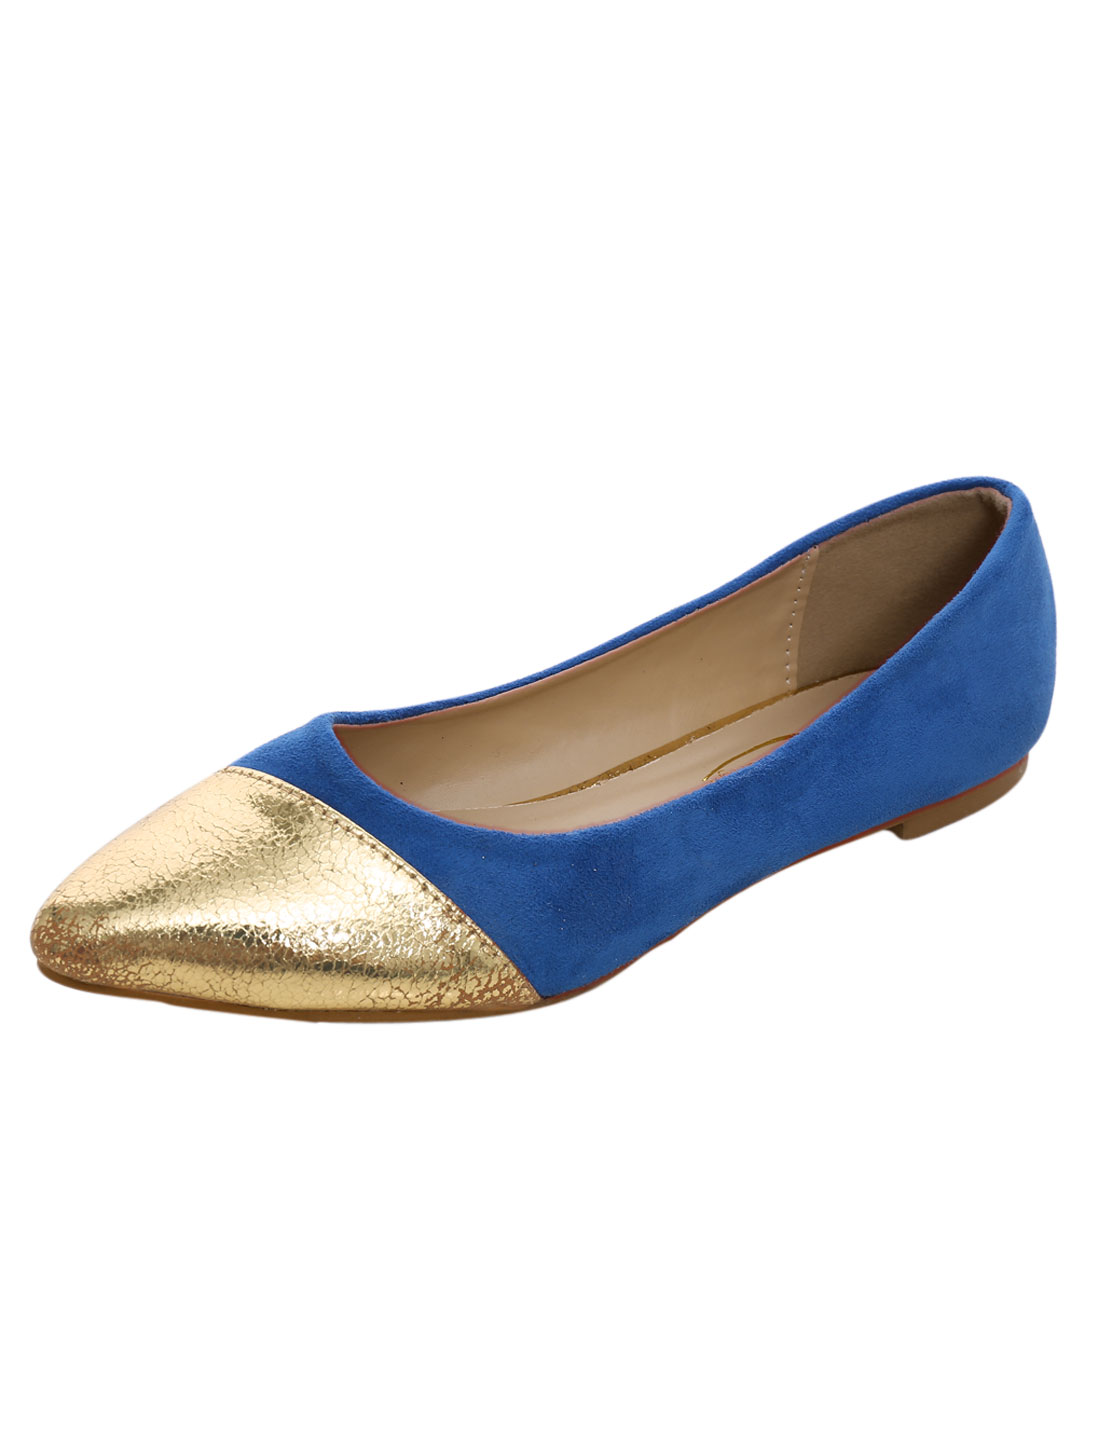 Women Color Block Panel Pointed Toe Padded Insole Flats Royal Blue US 8